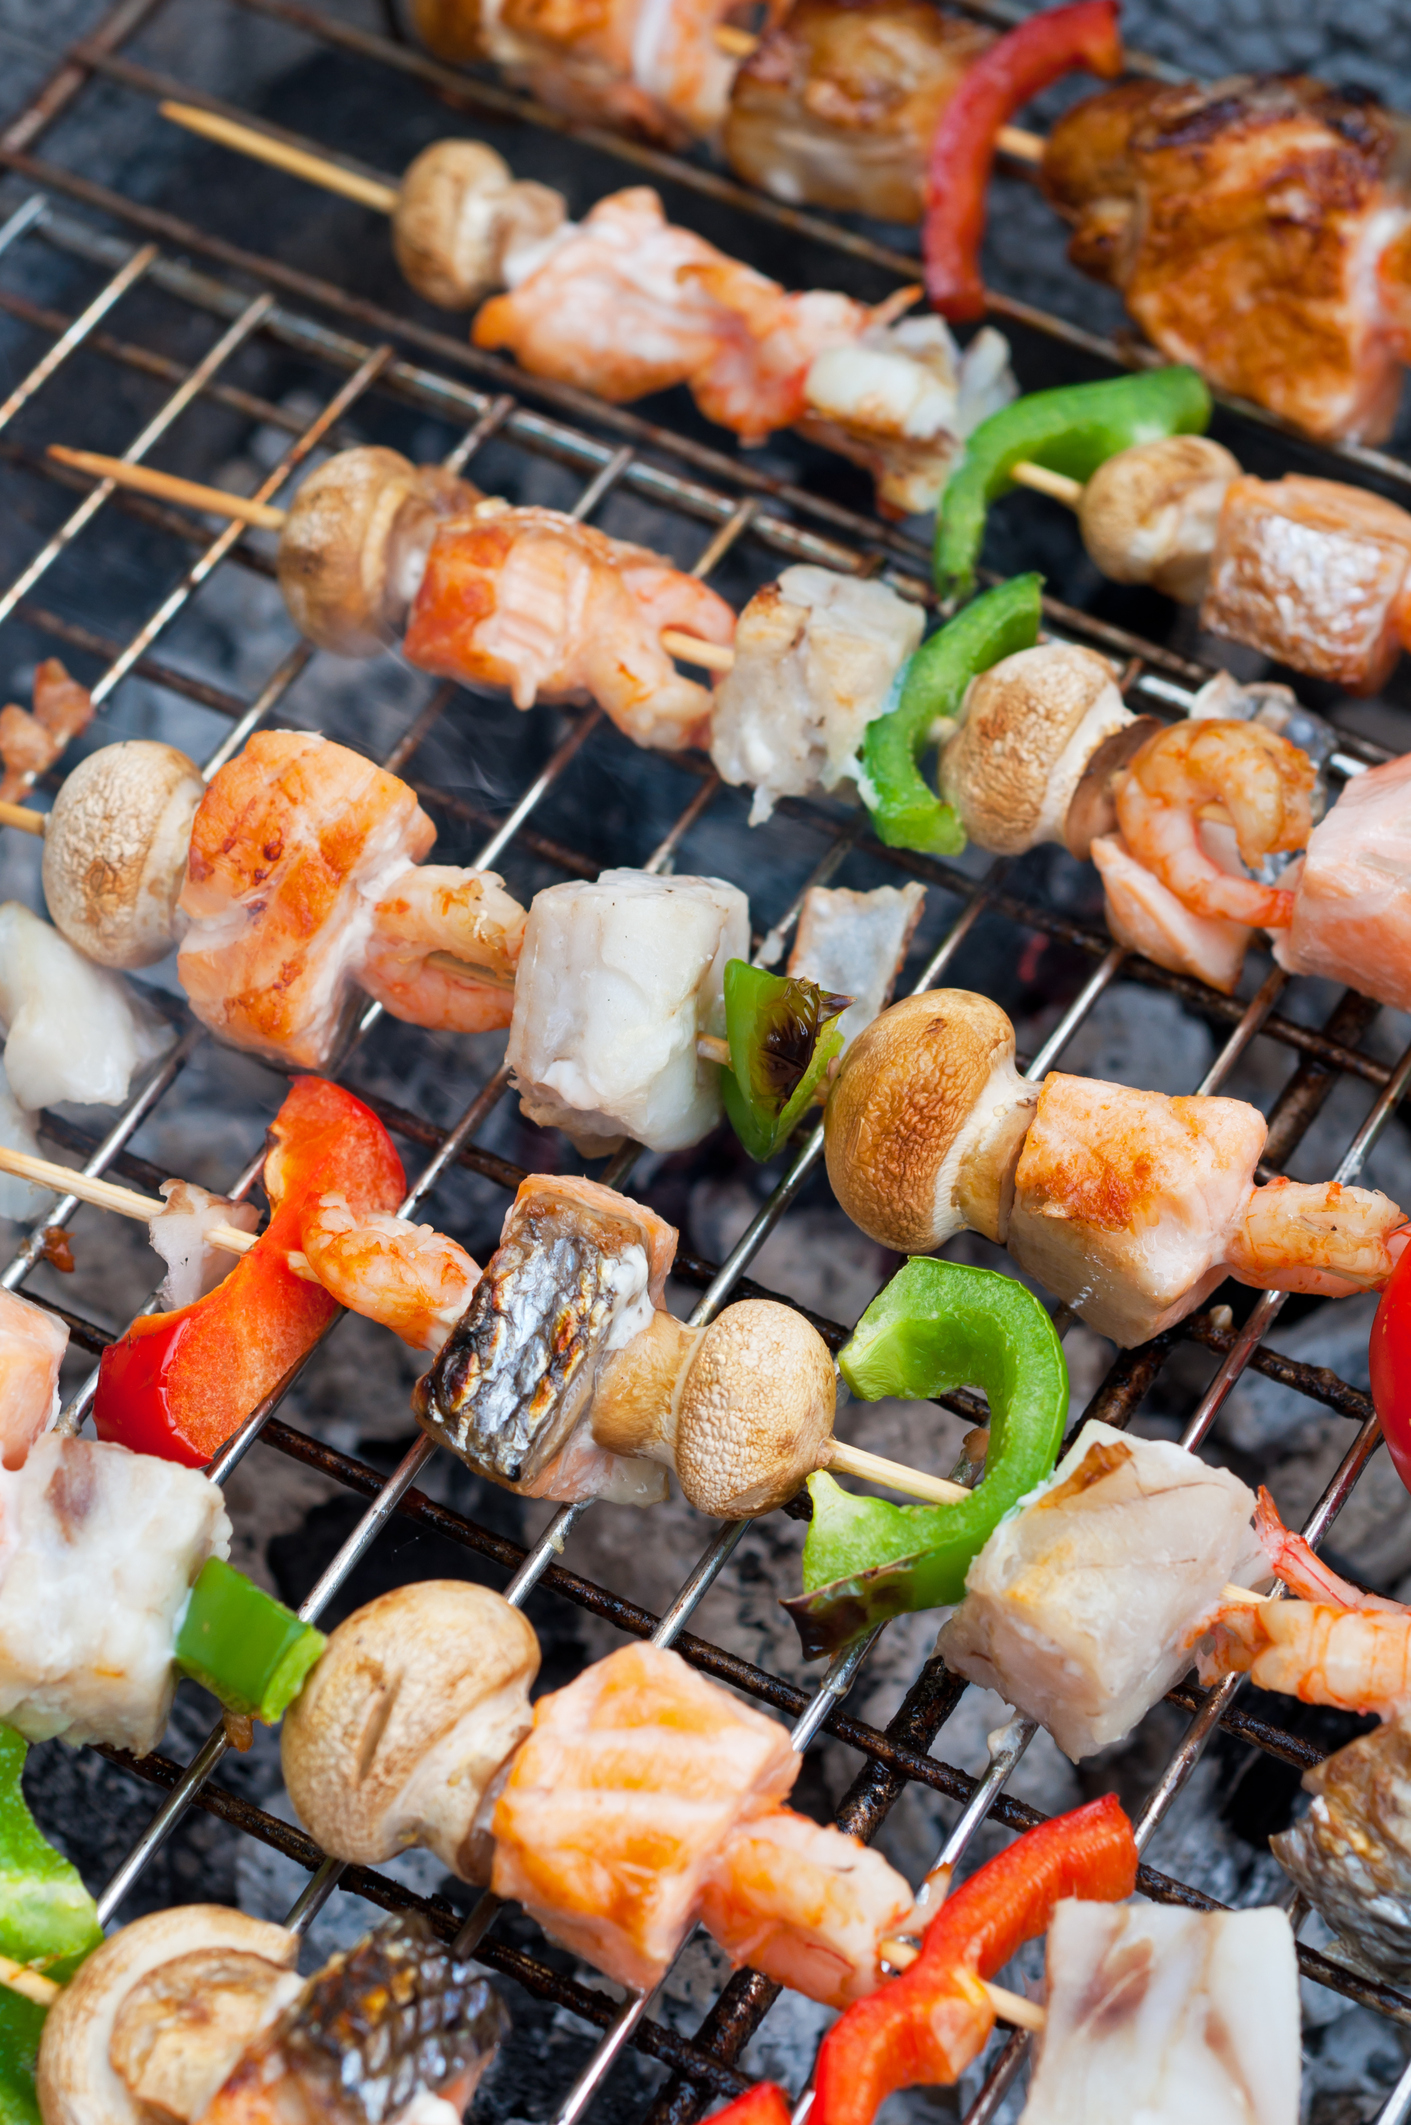 Skewers with shrimp, fish (cod and salmon), bell pepper, and mushrooms